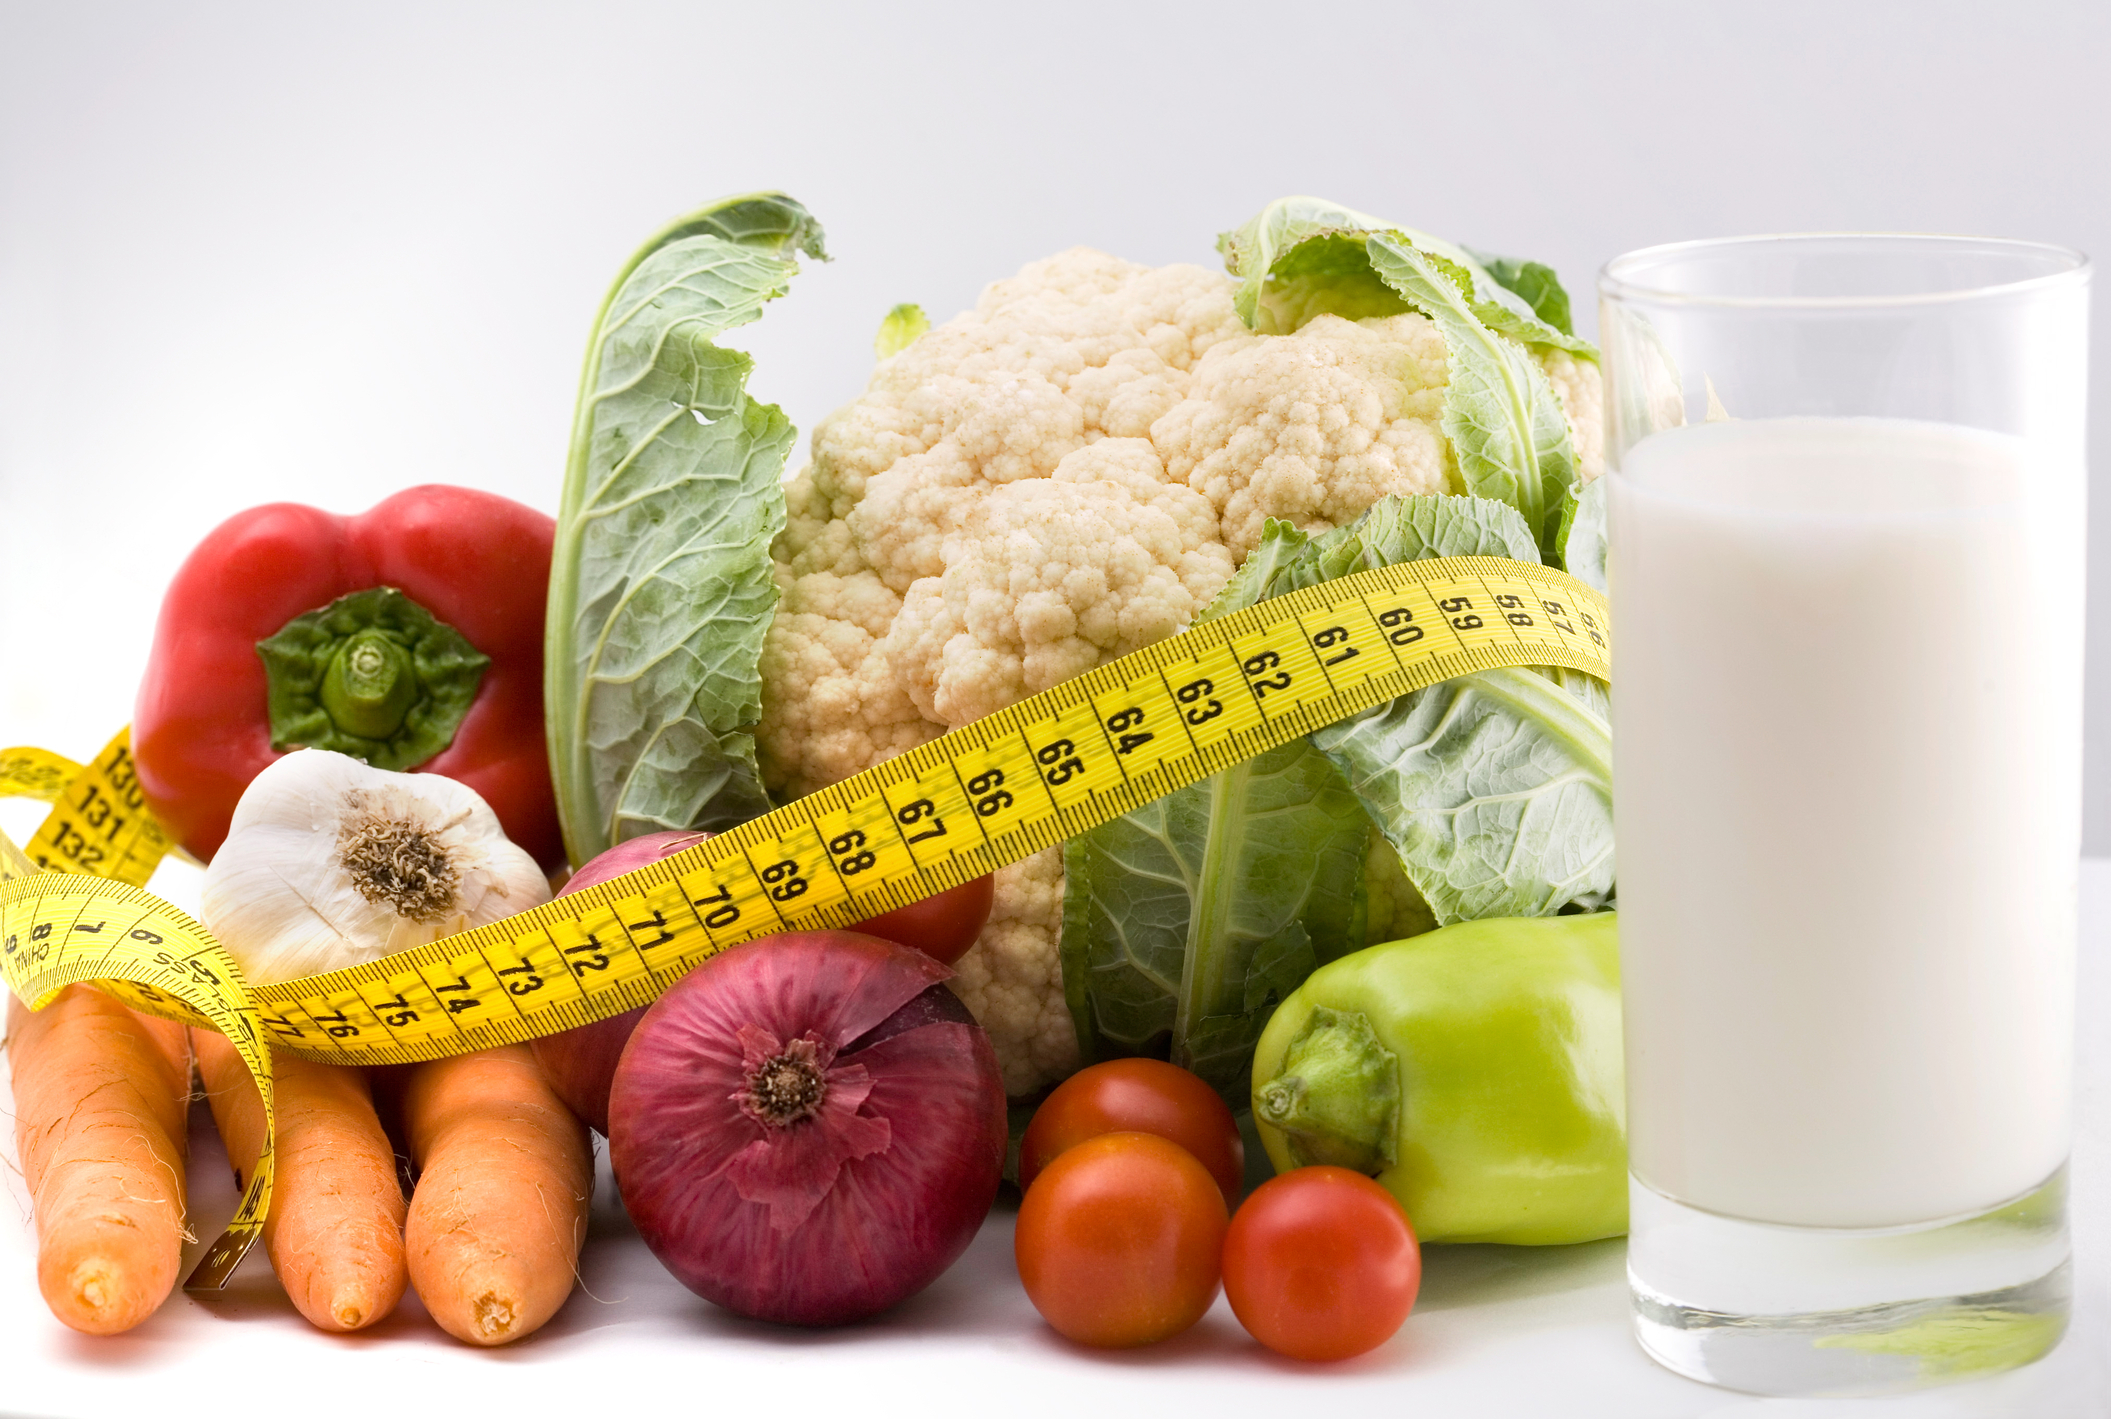 veggies and milk to lose weight naturally